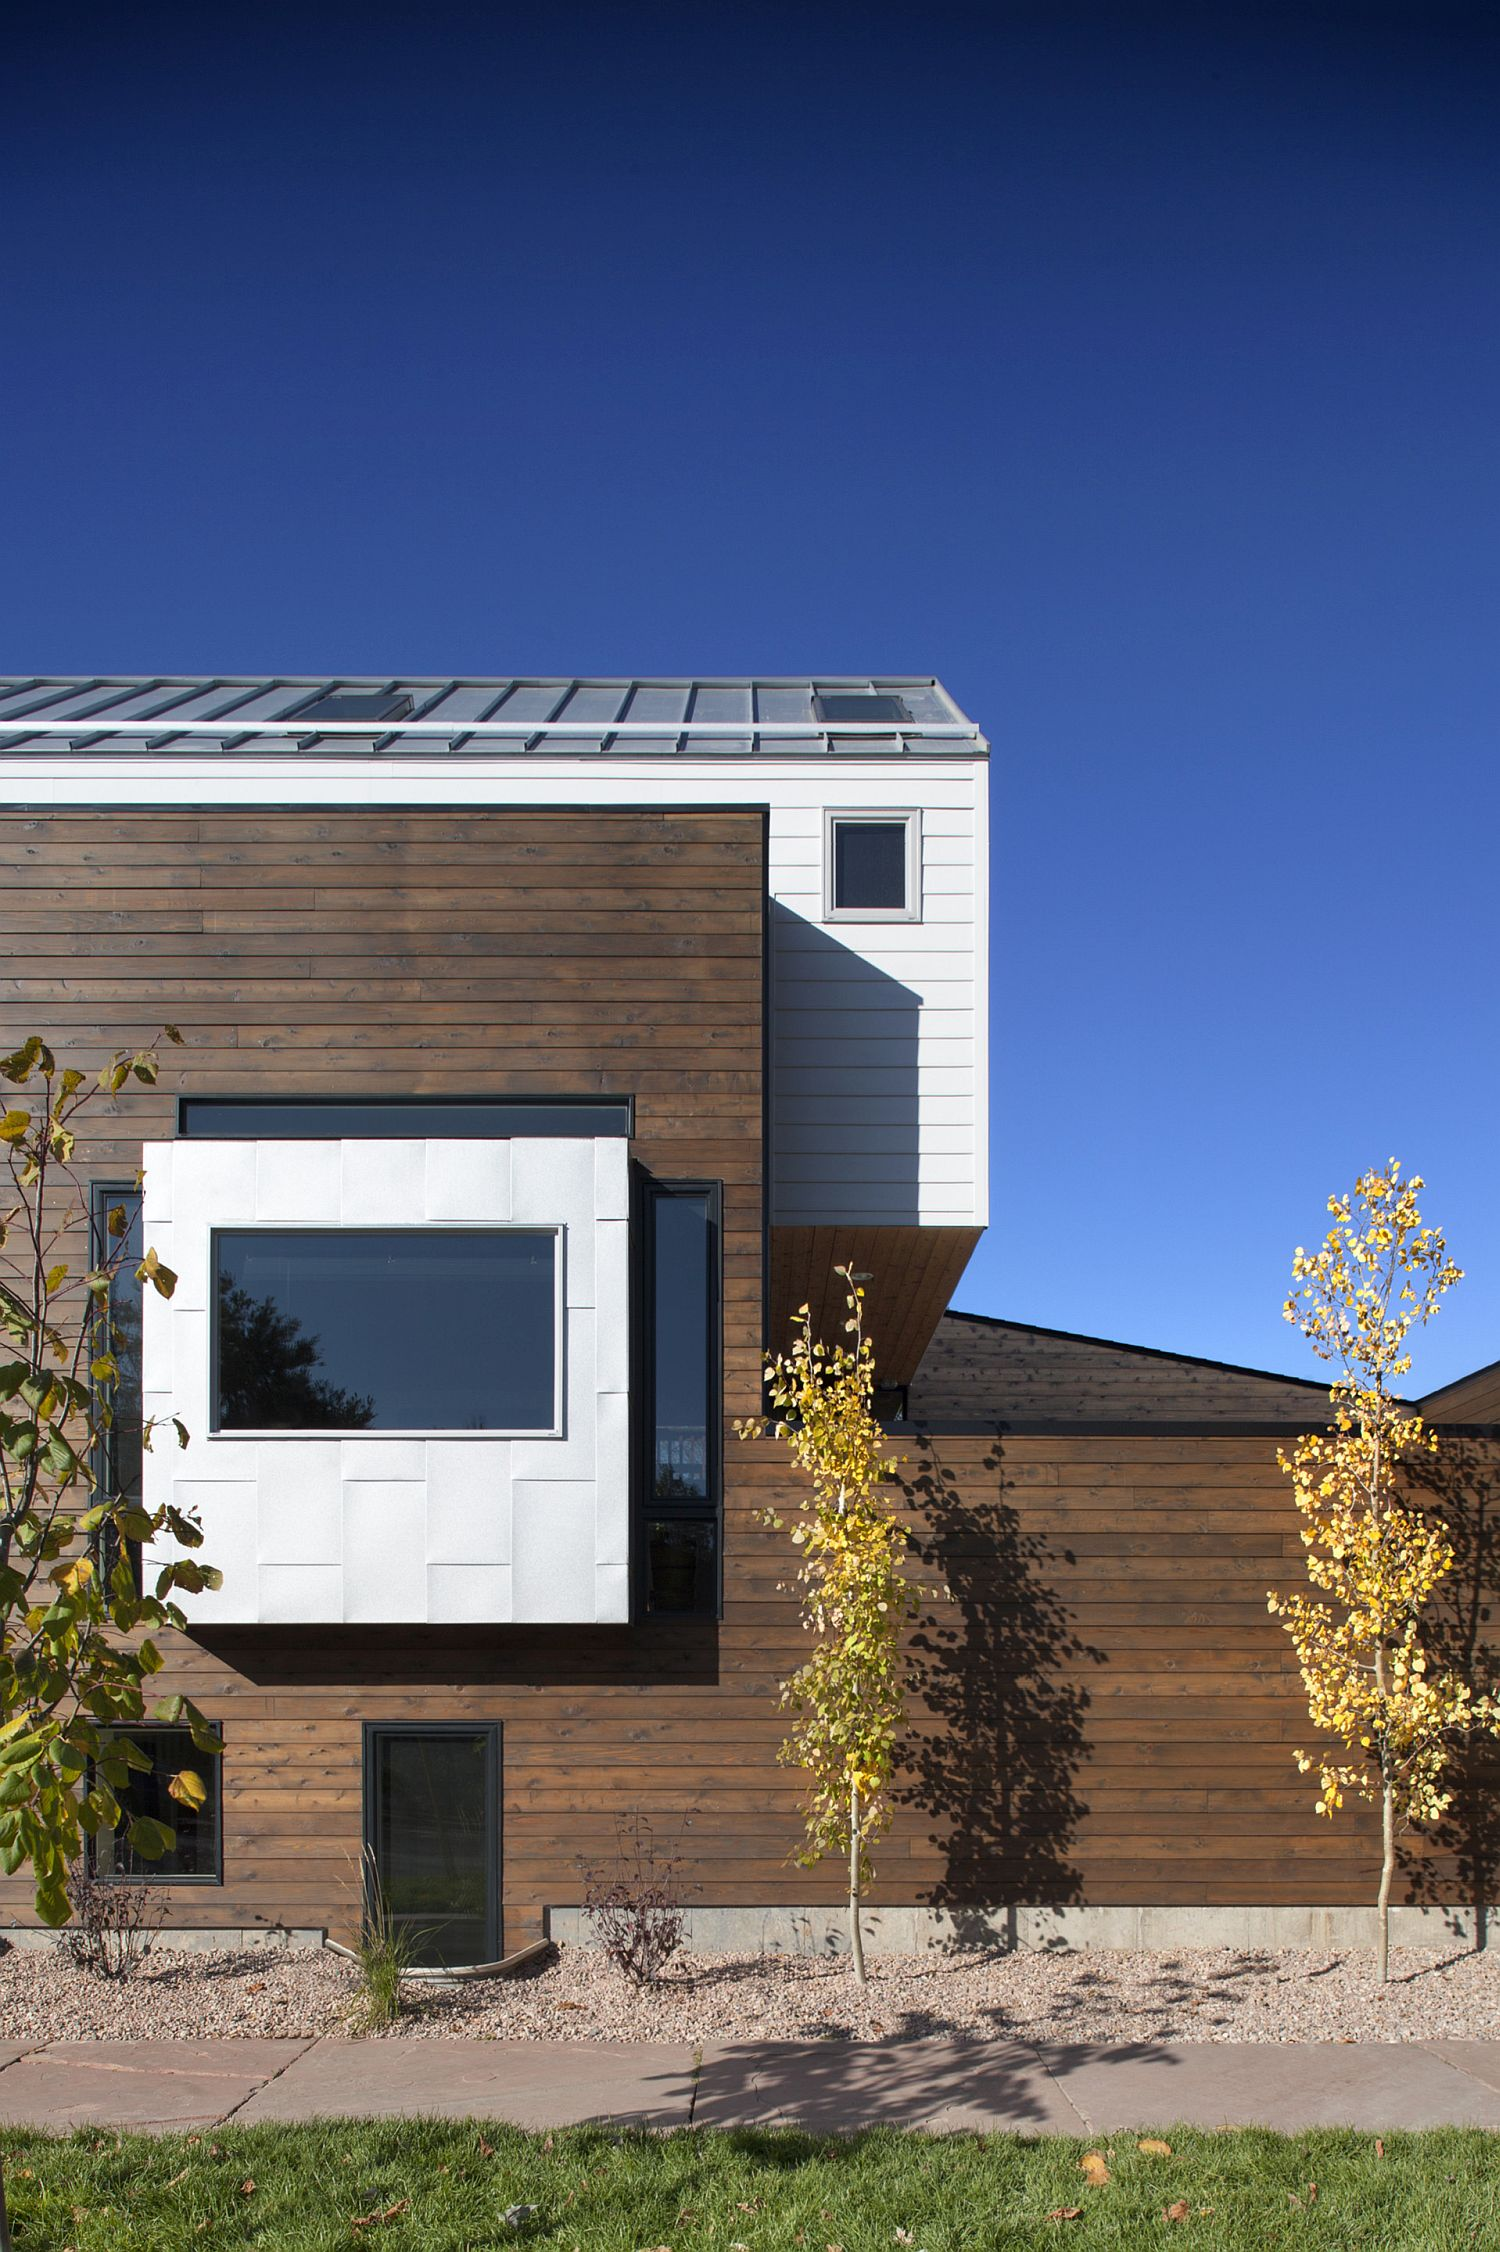 Western Red Cedar exterior of the modern house